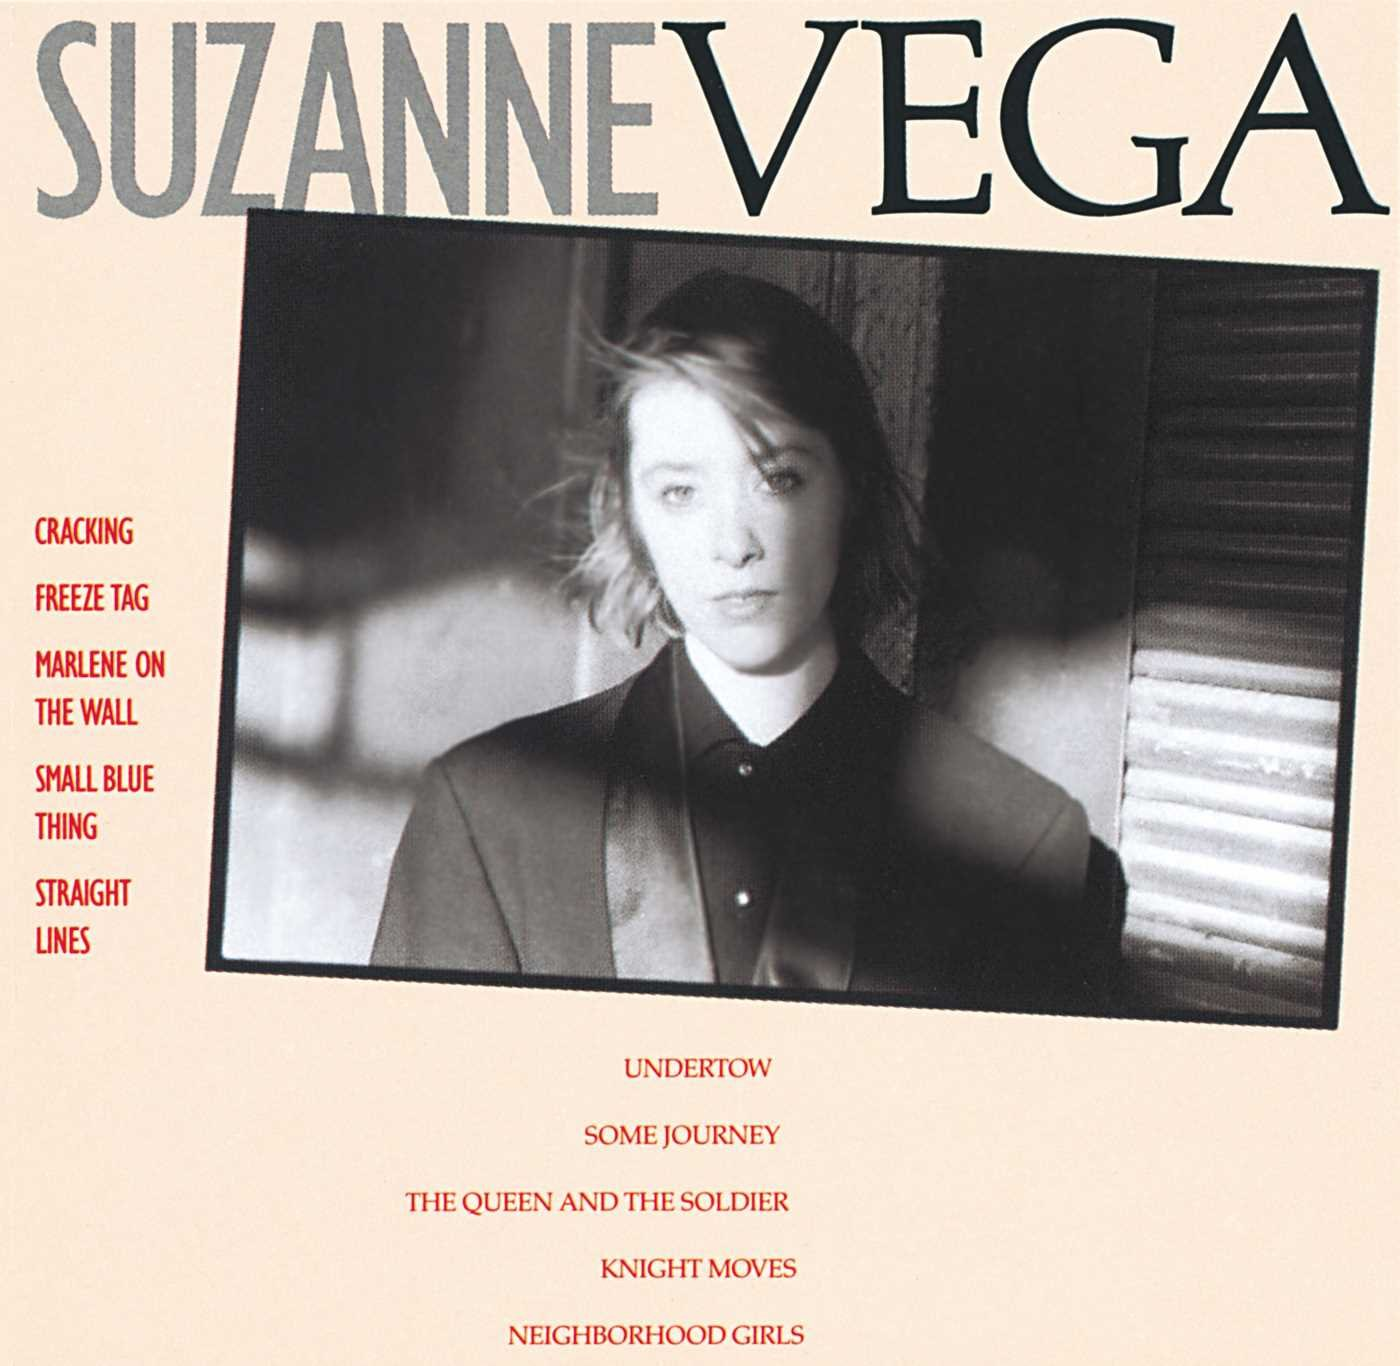 Suzanne Vega by A&M